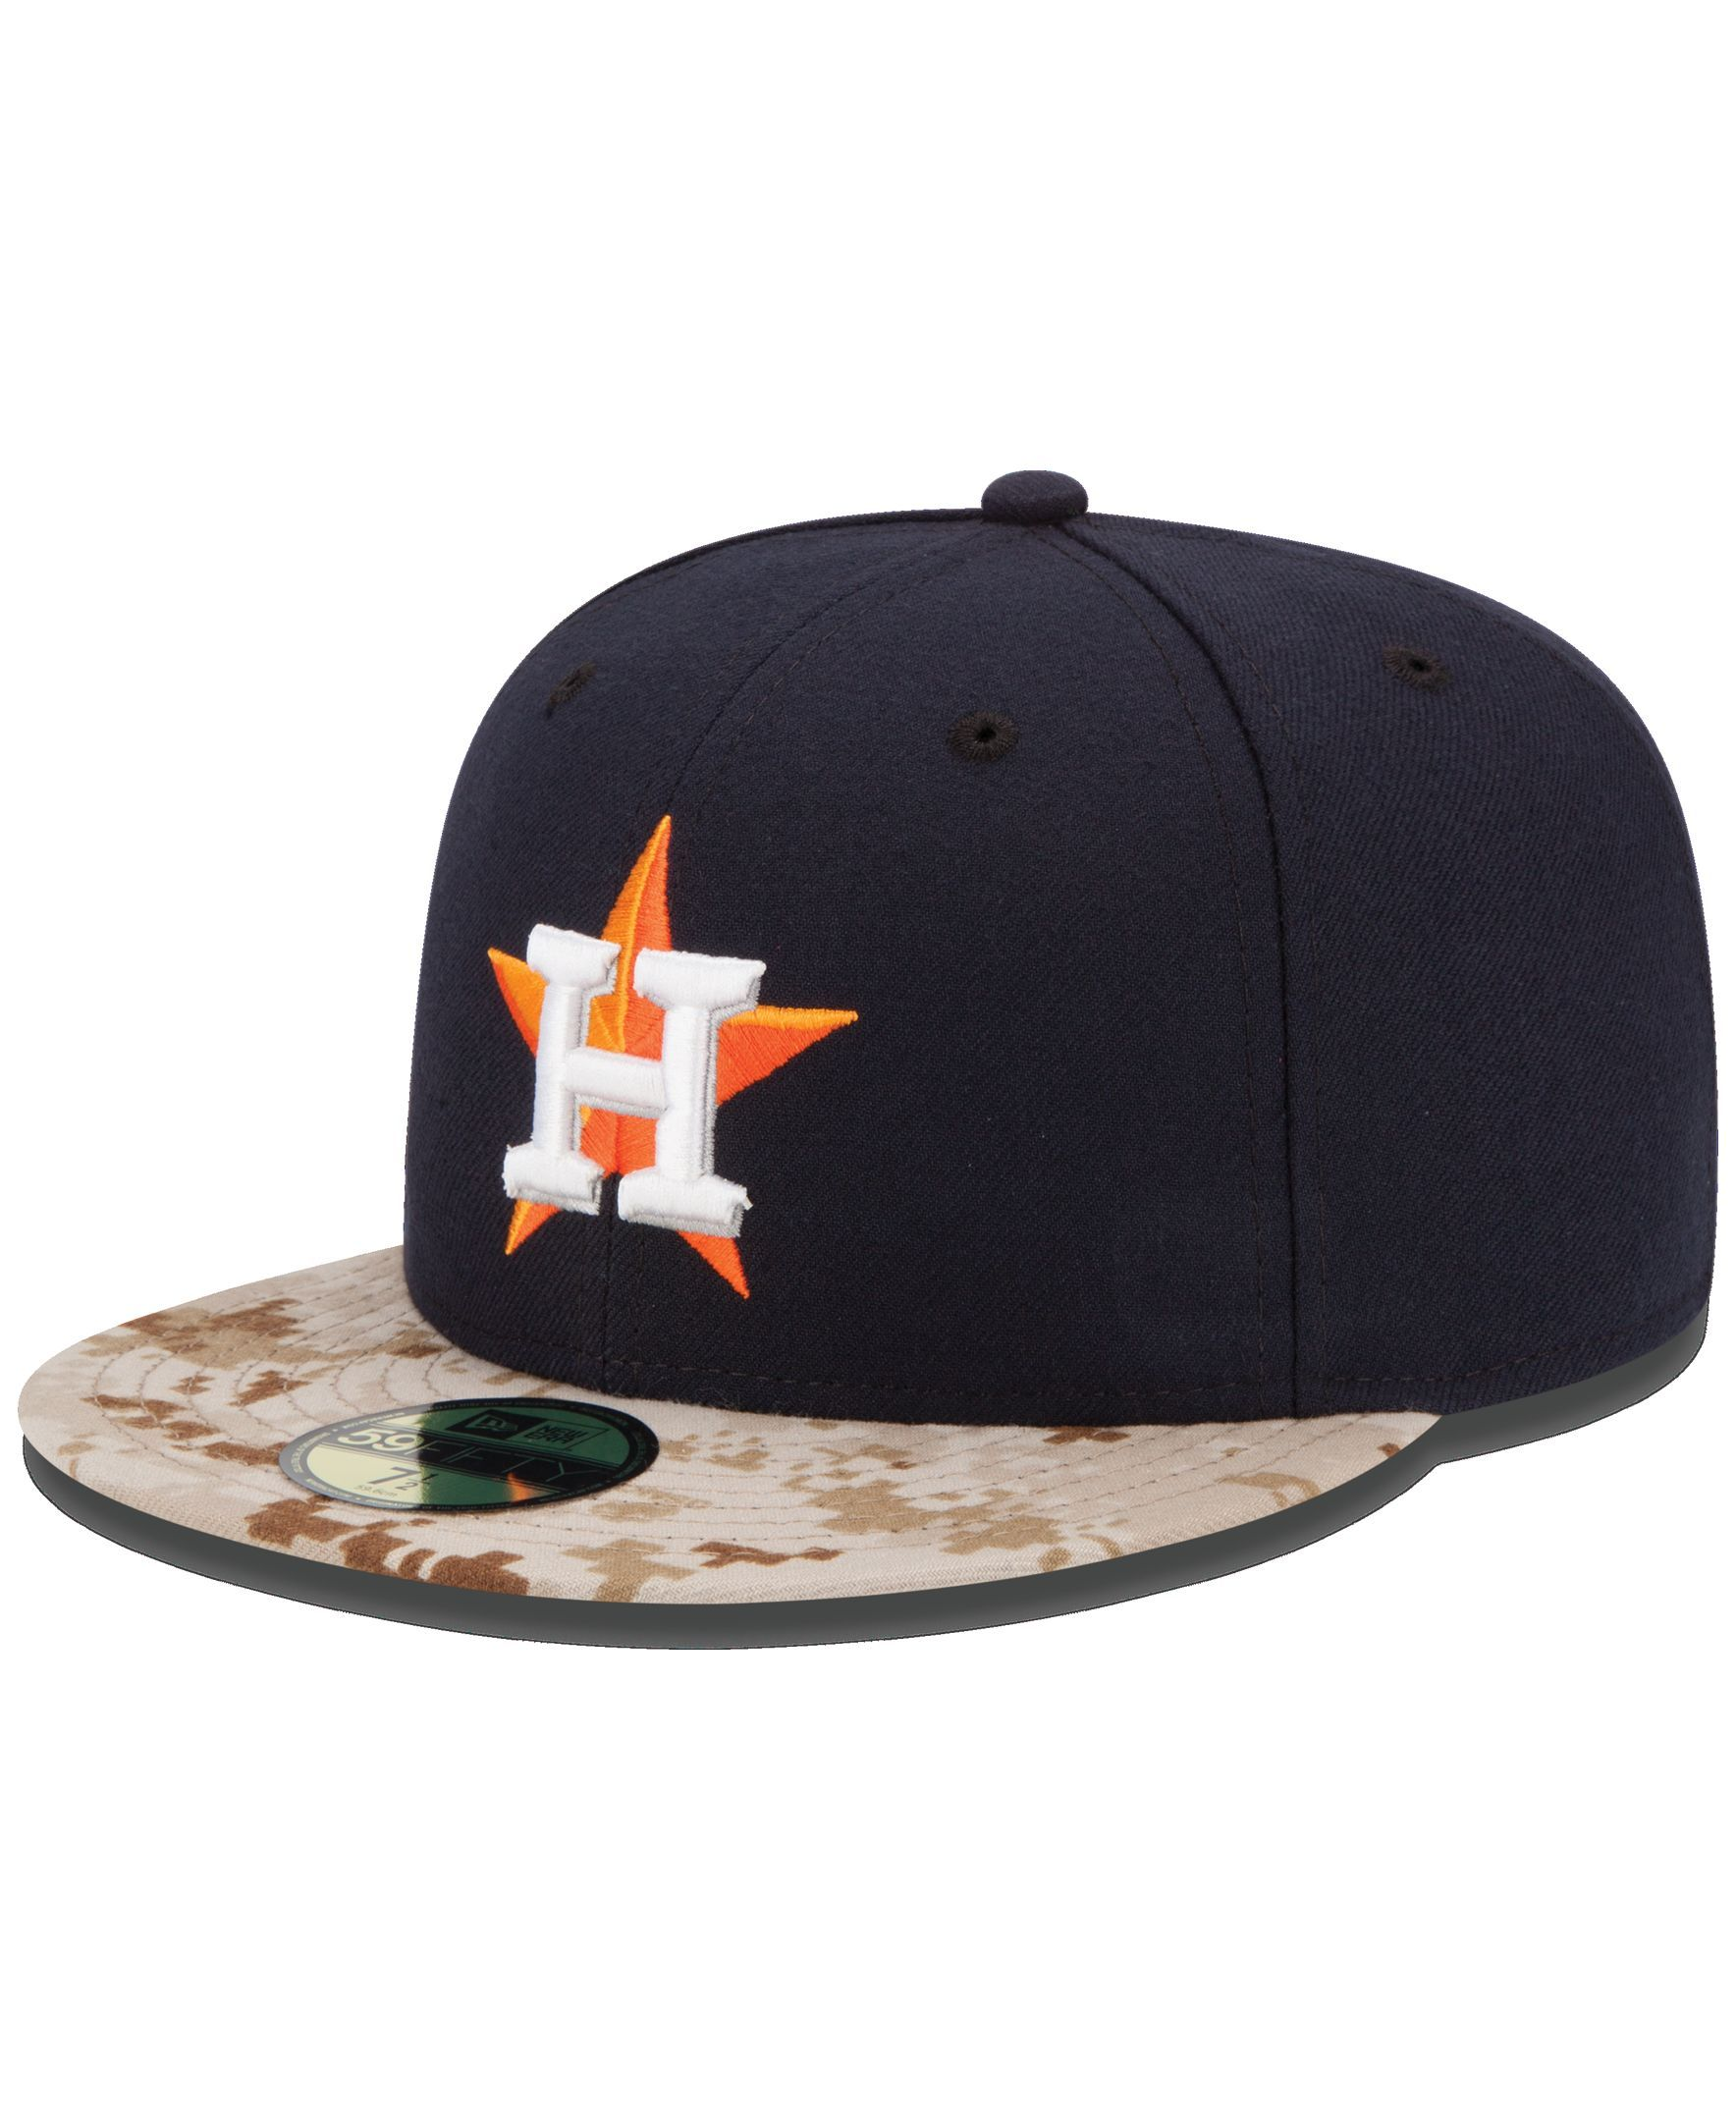 New Era Houston Astros Memorial Day Stars and Stripes 59FIFTY Cap